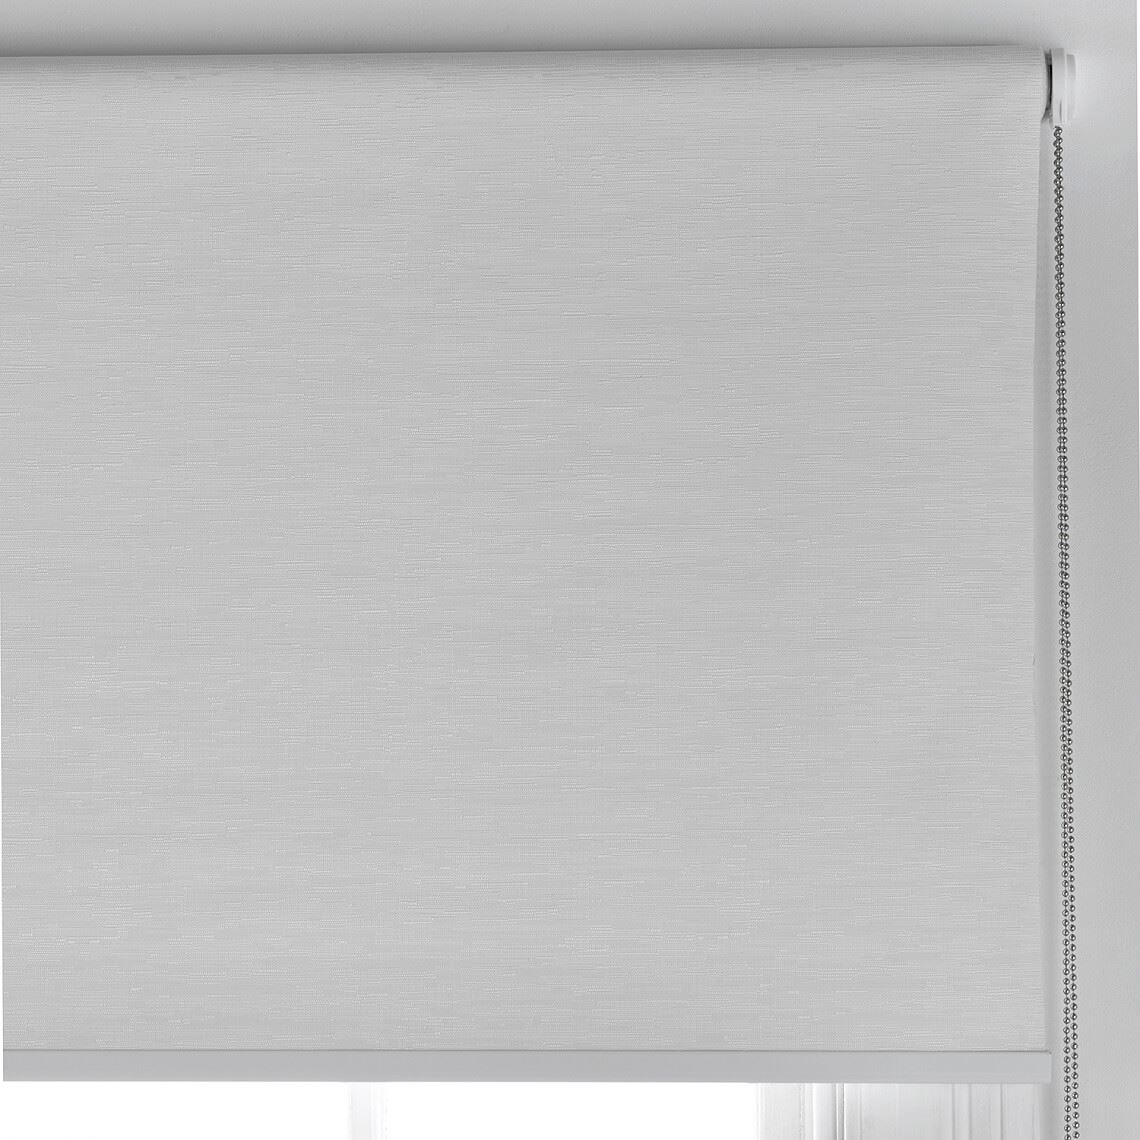 Ashcroft Roller Blind Size W 60cm x D 0cm x H 210cm in Eggshell 100% Polyester Freedom by Freedom, a Curtains for sale on Style Sourcebook